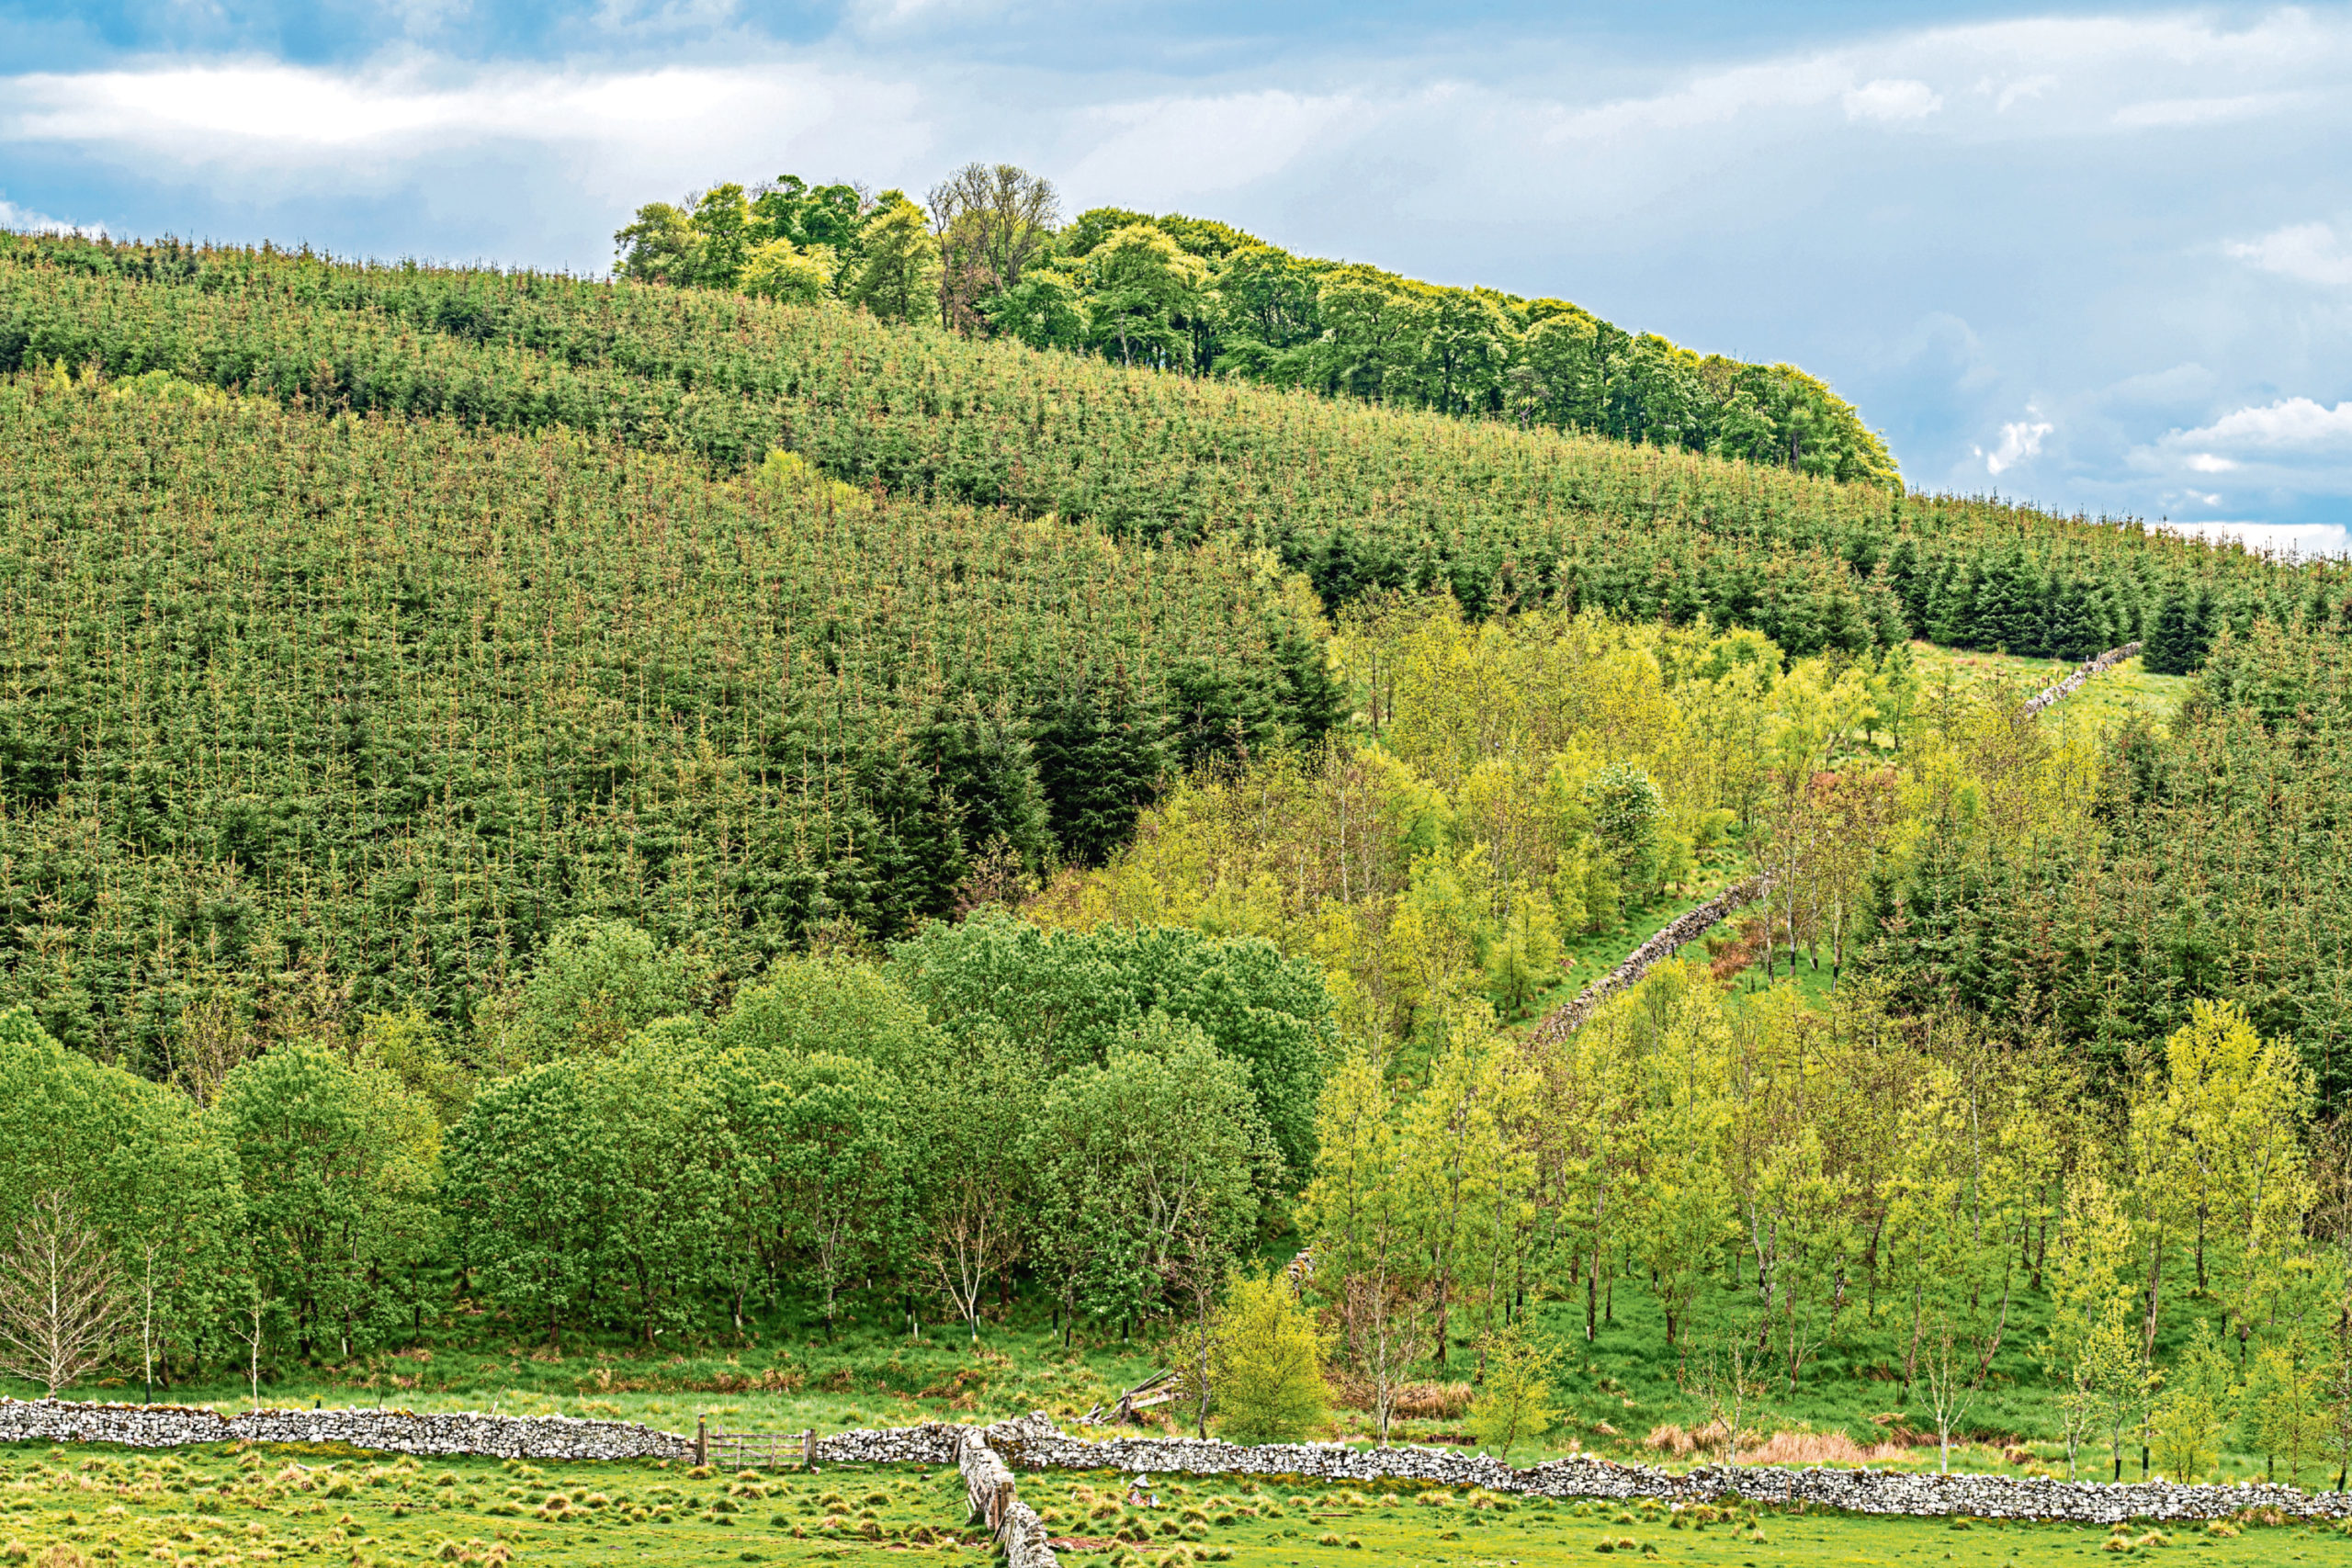 A £1 million cash pot is being offered to encourage interest in forestry.